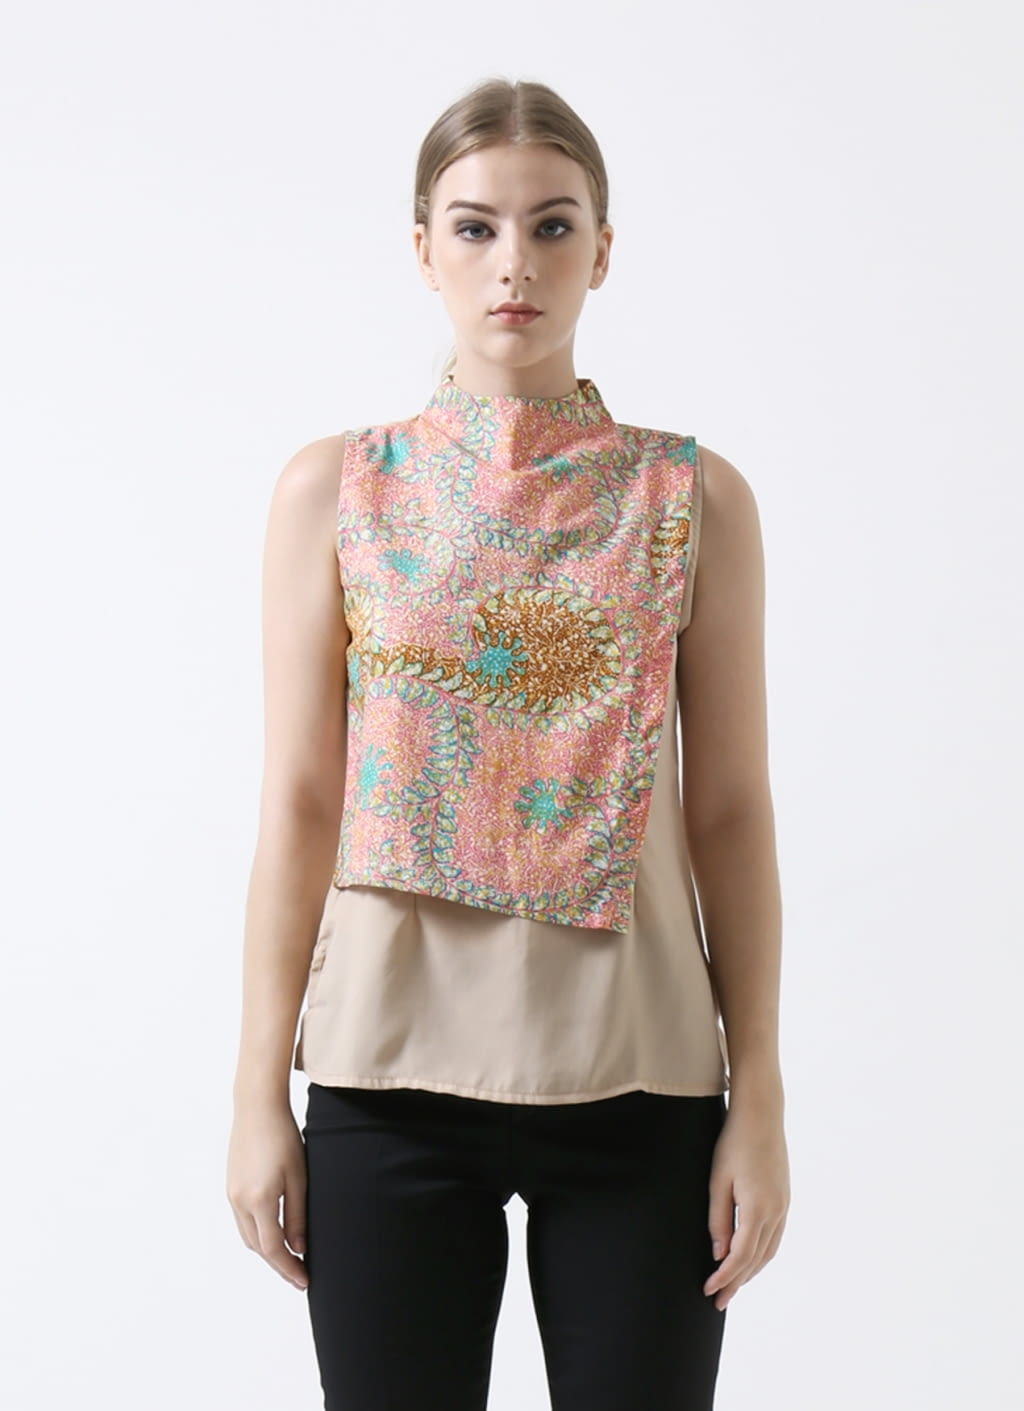 Warangka Batik Pink Paige Layer Top